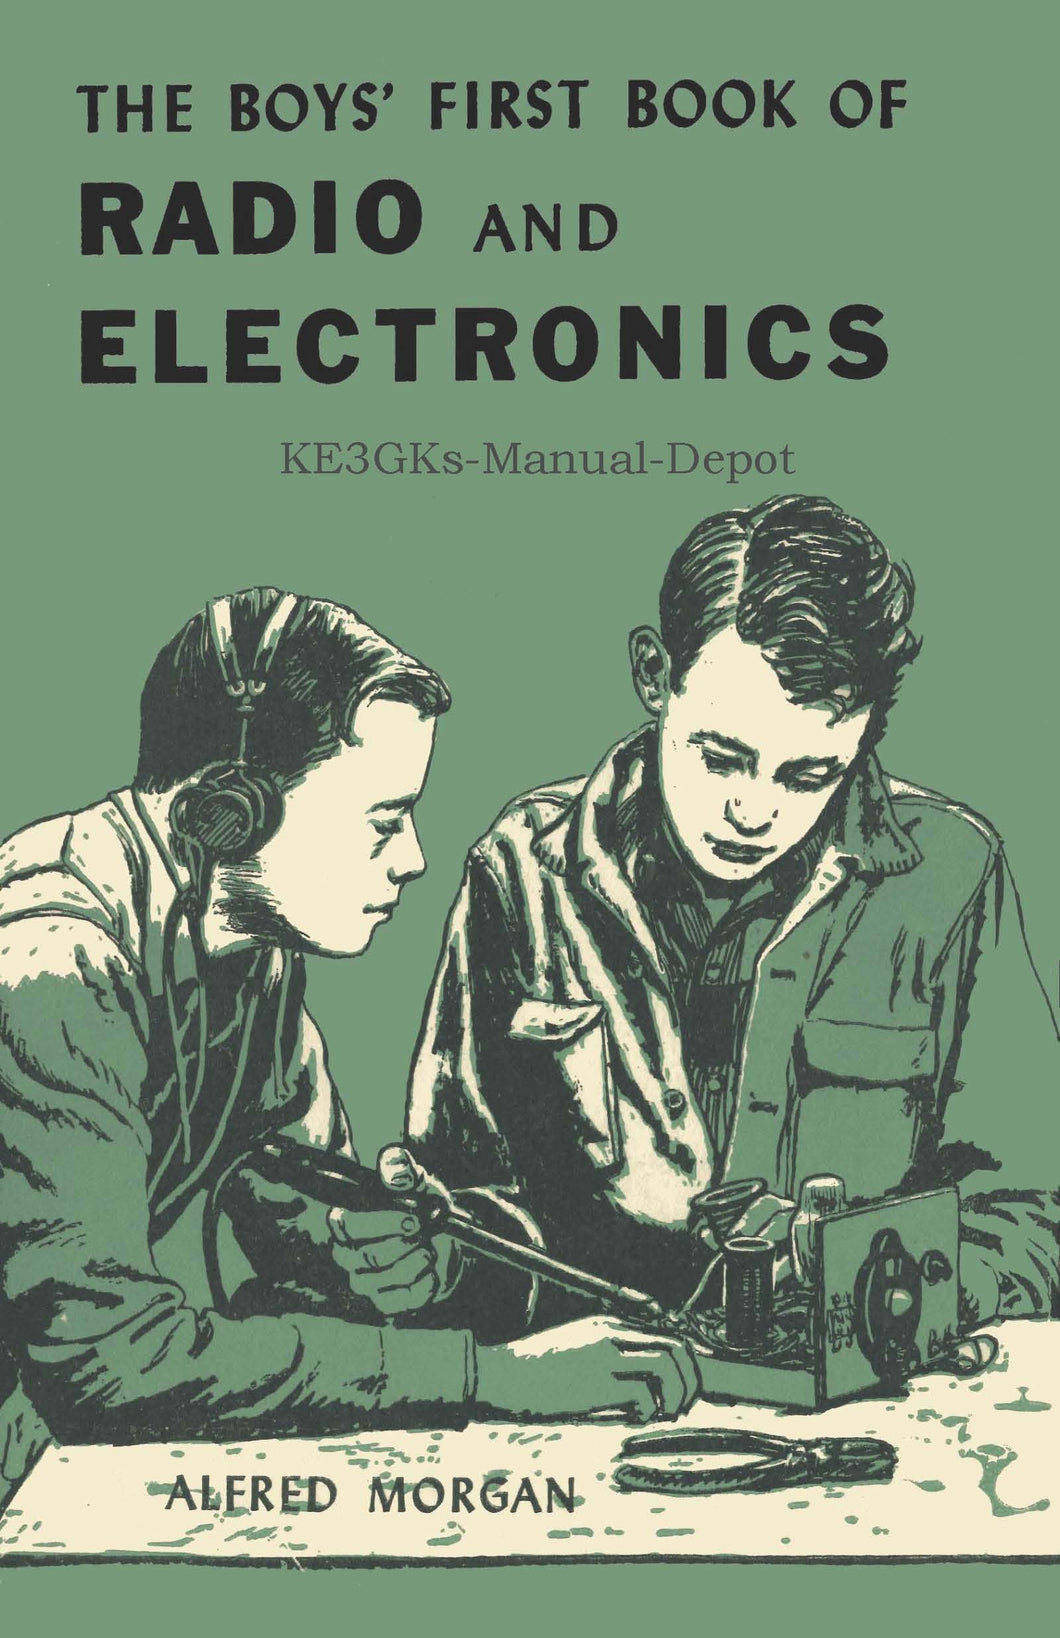 The Boys First Book of Radio and Electronics